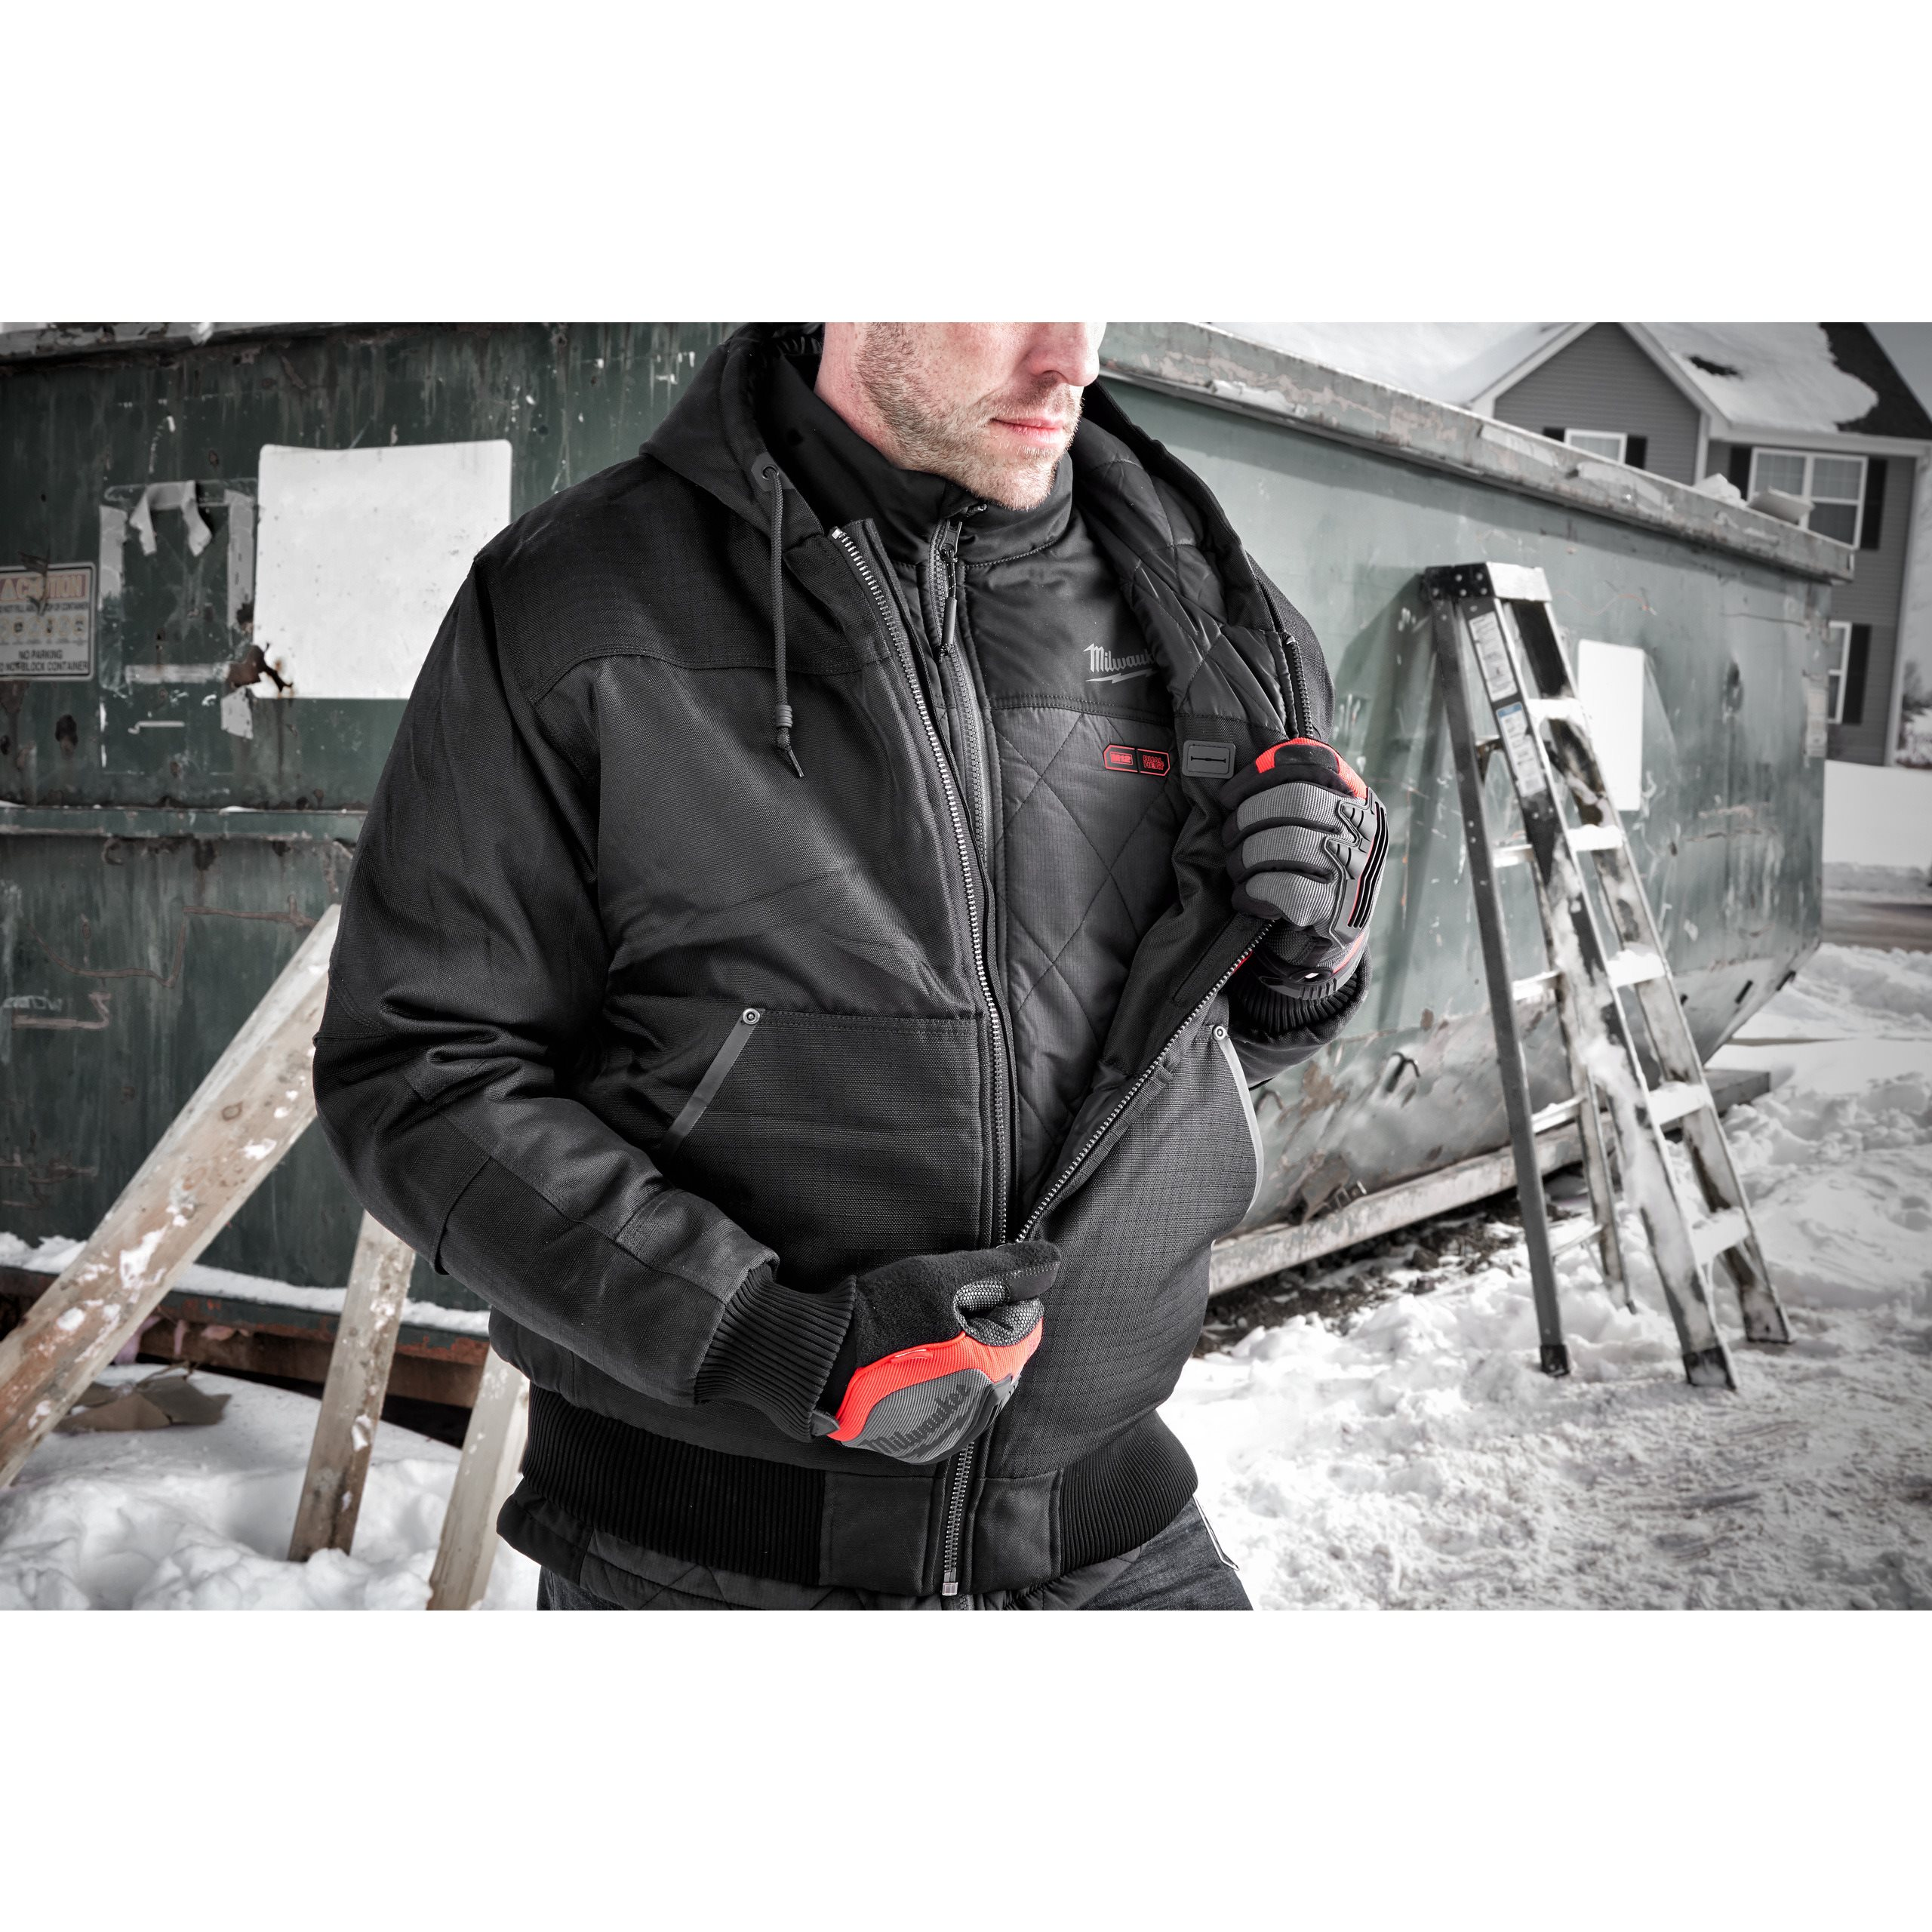 No Battery or Charger XL 4933464373 Milwaukee M12 HBWP-0 Heated Vest